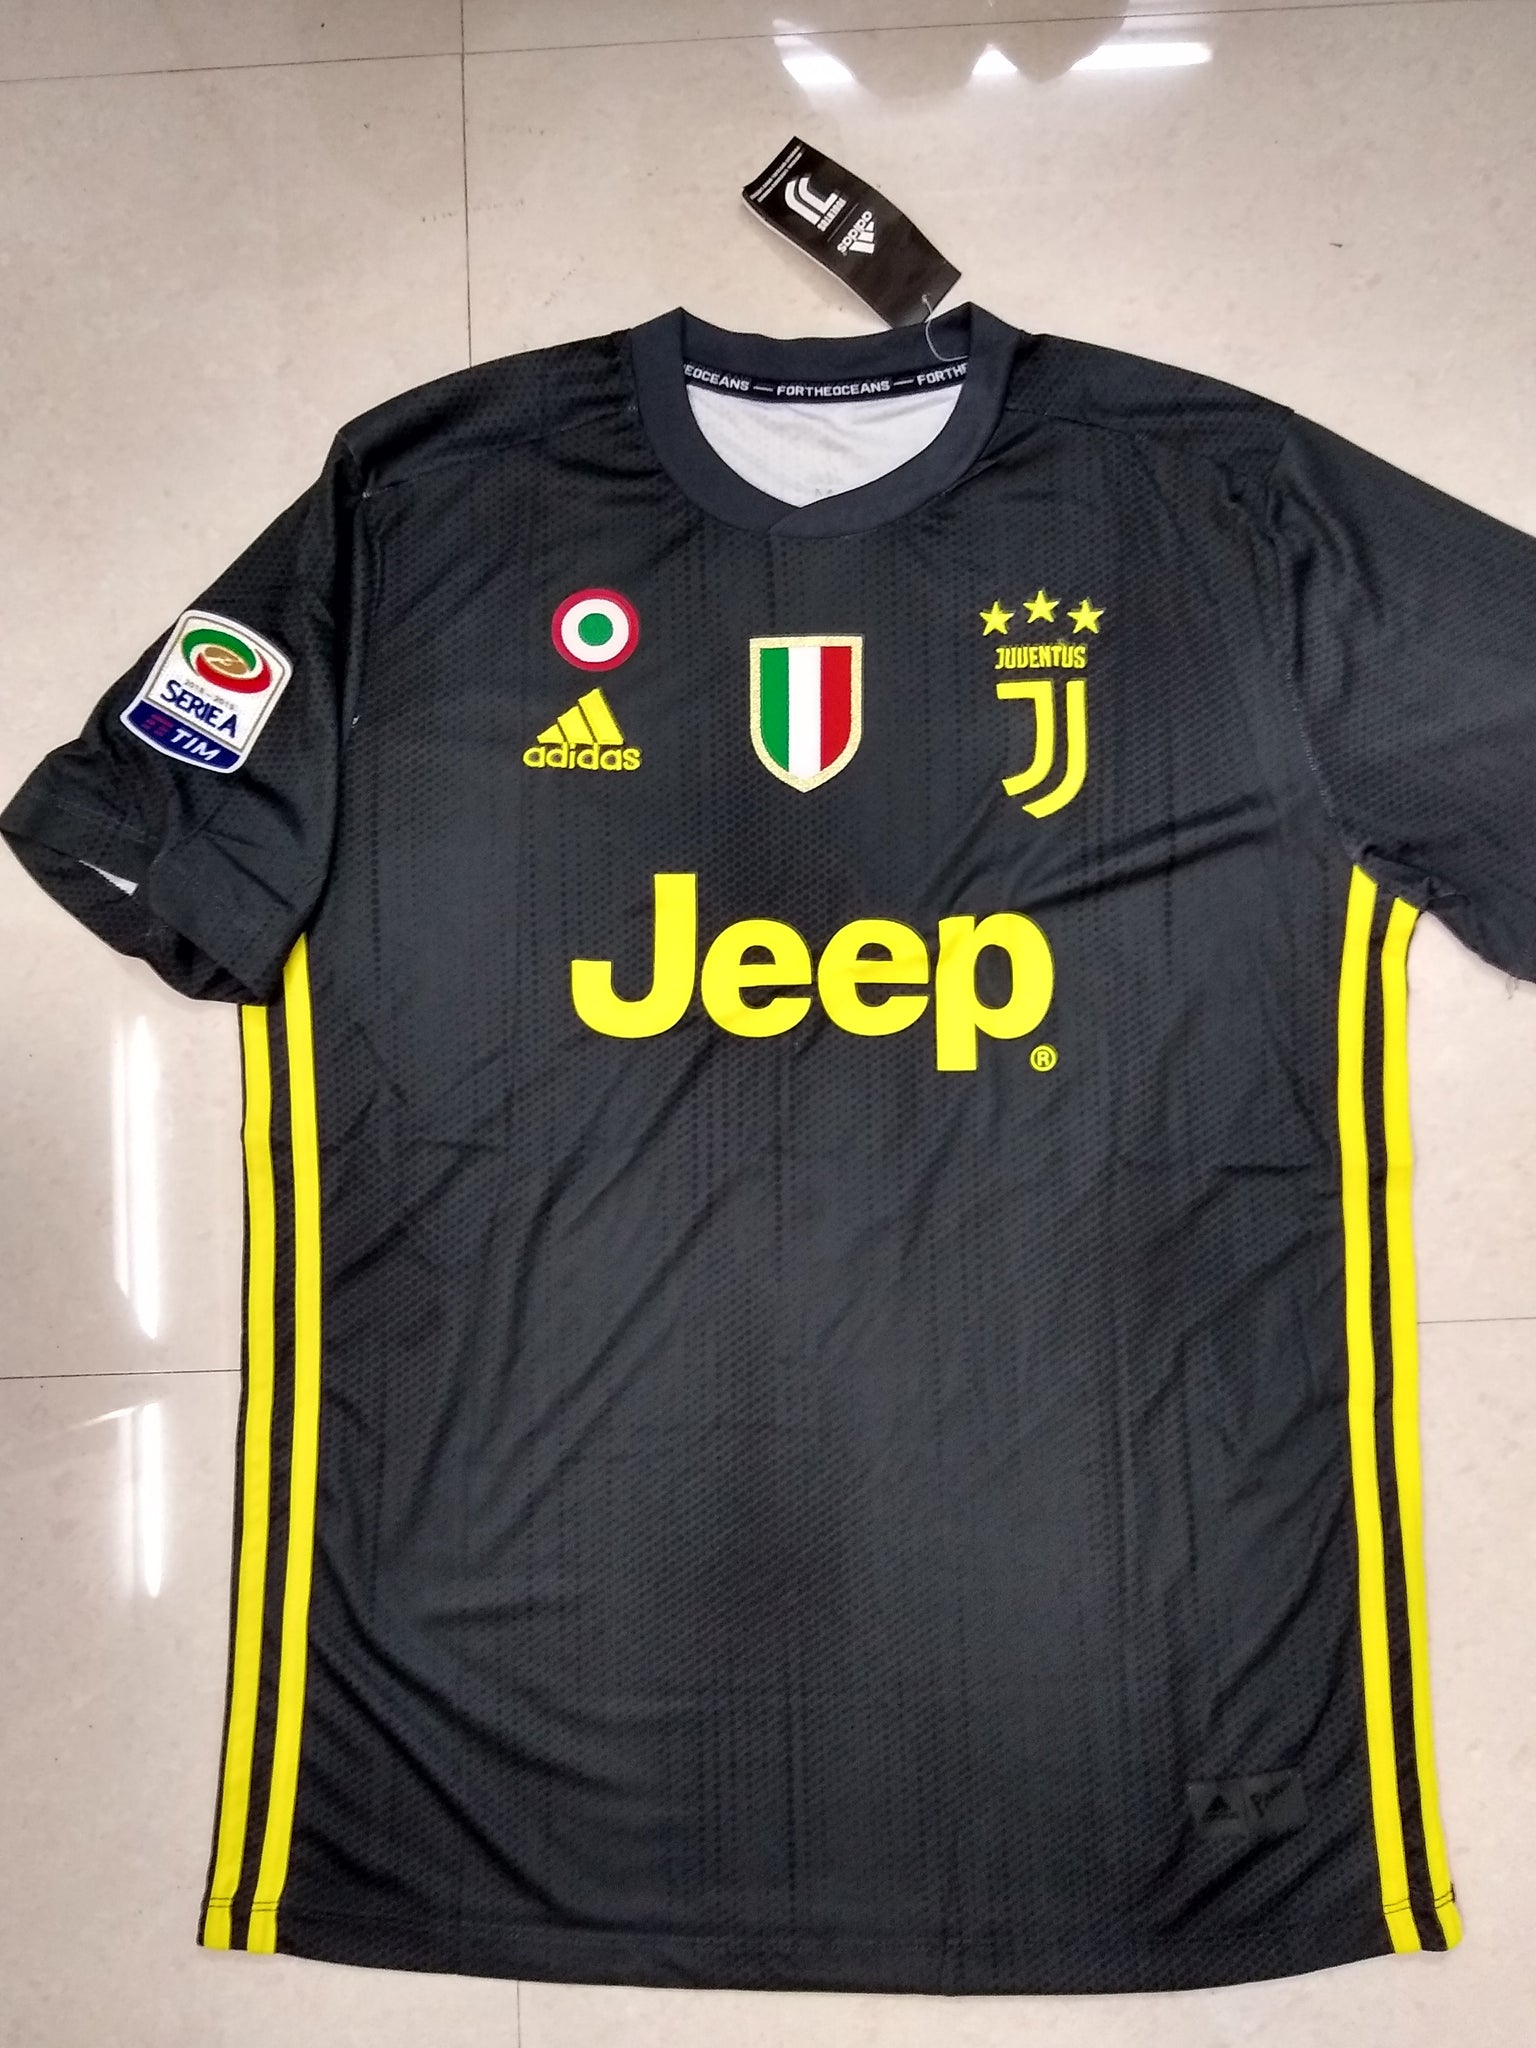 on sale 28c3f e830d Juventus Ronaldo Home Football Jersey Season 2018-19 online ...